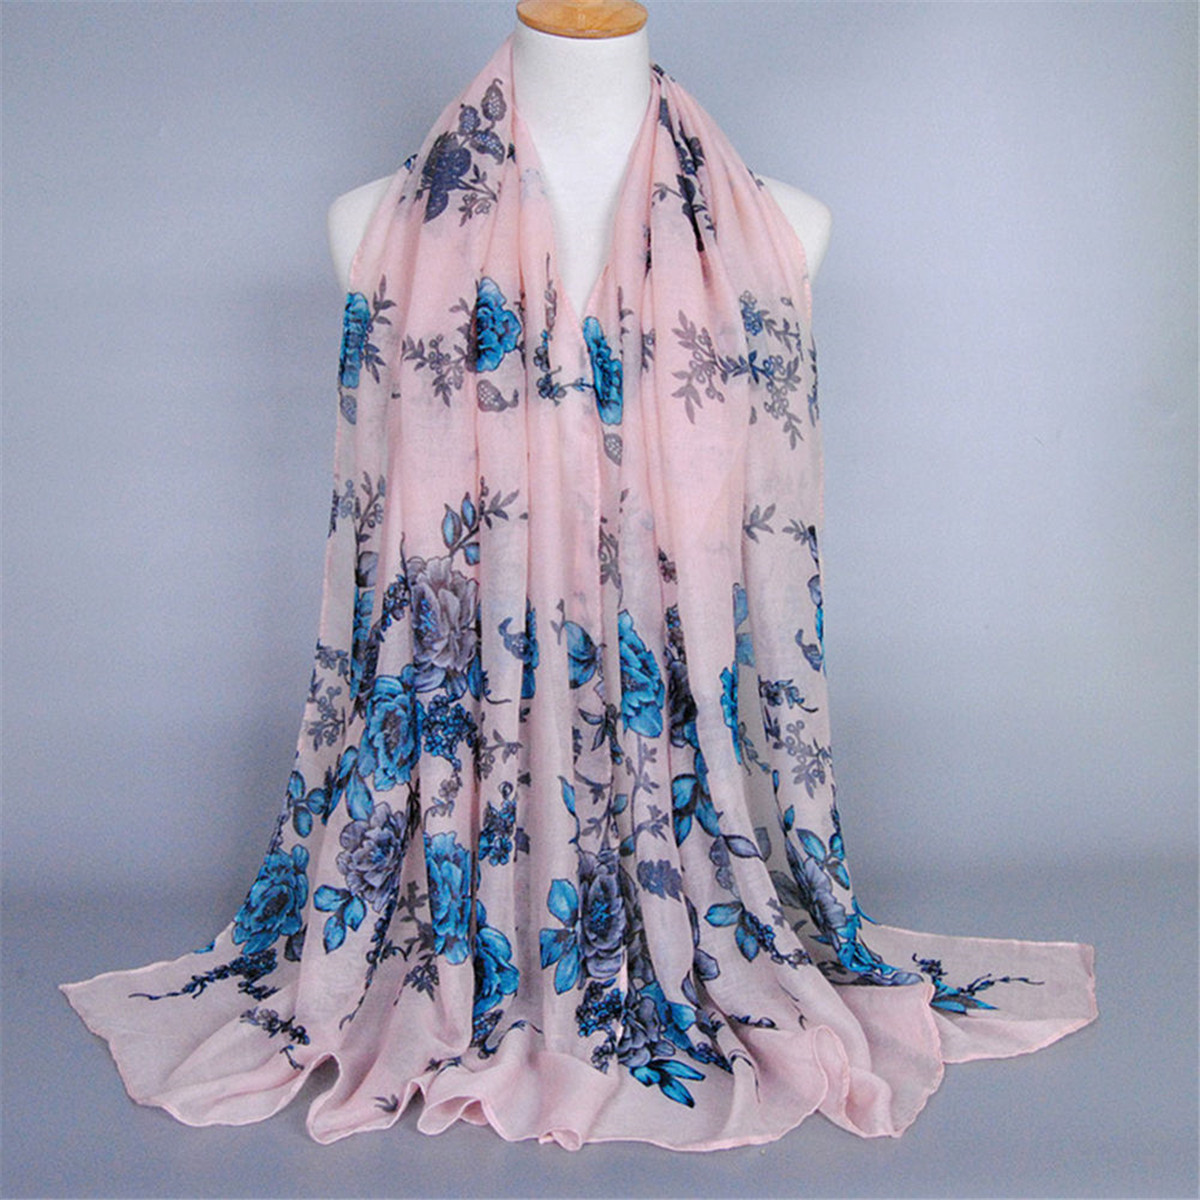 Women Scarf Voile Flower Printing Floral Pattern Cotton Long Shawl Neck Wrap Pashmina